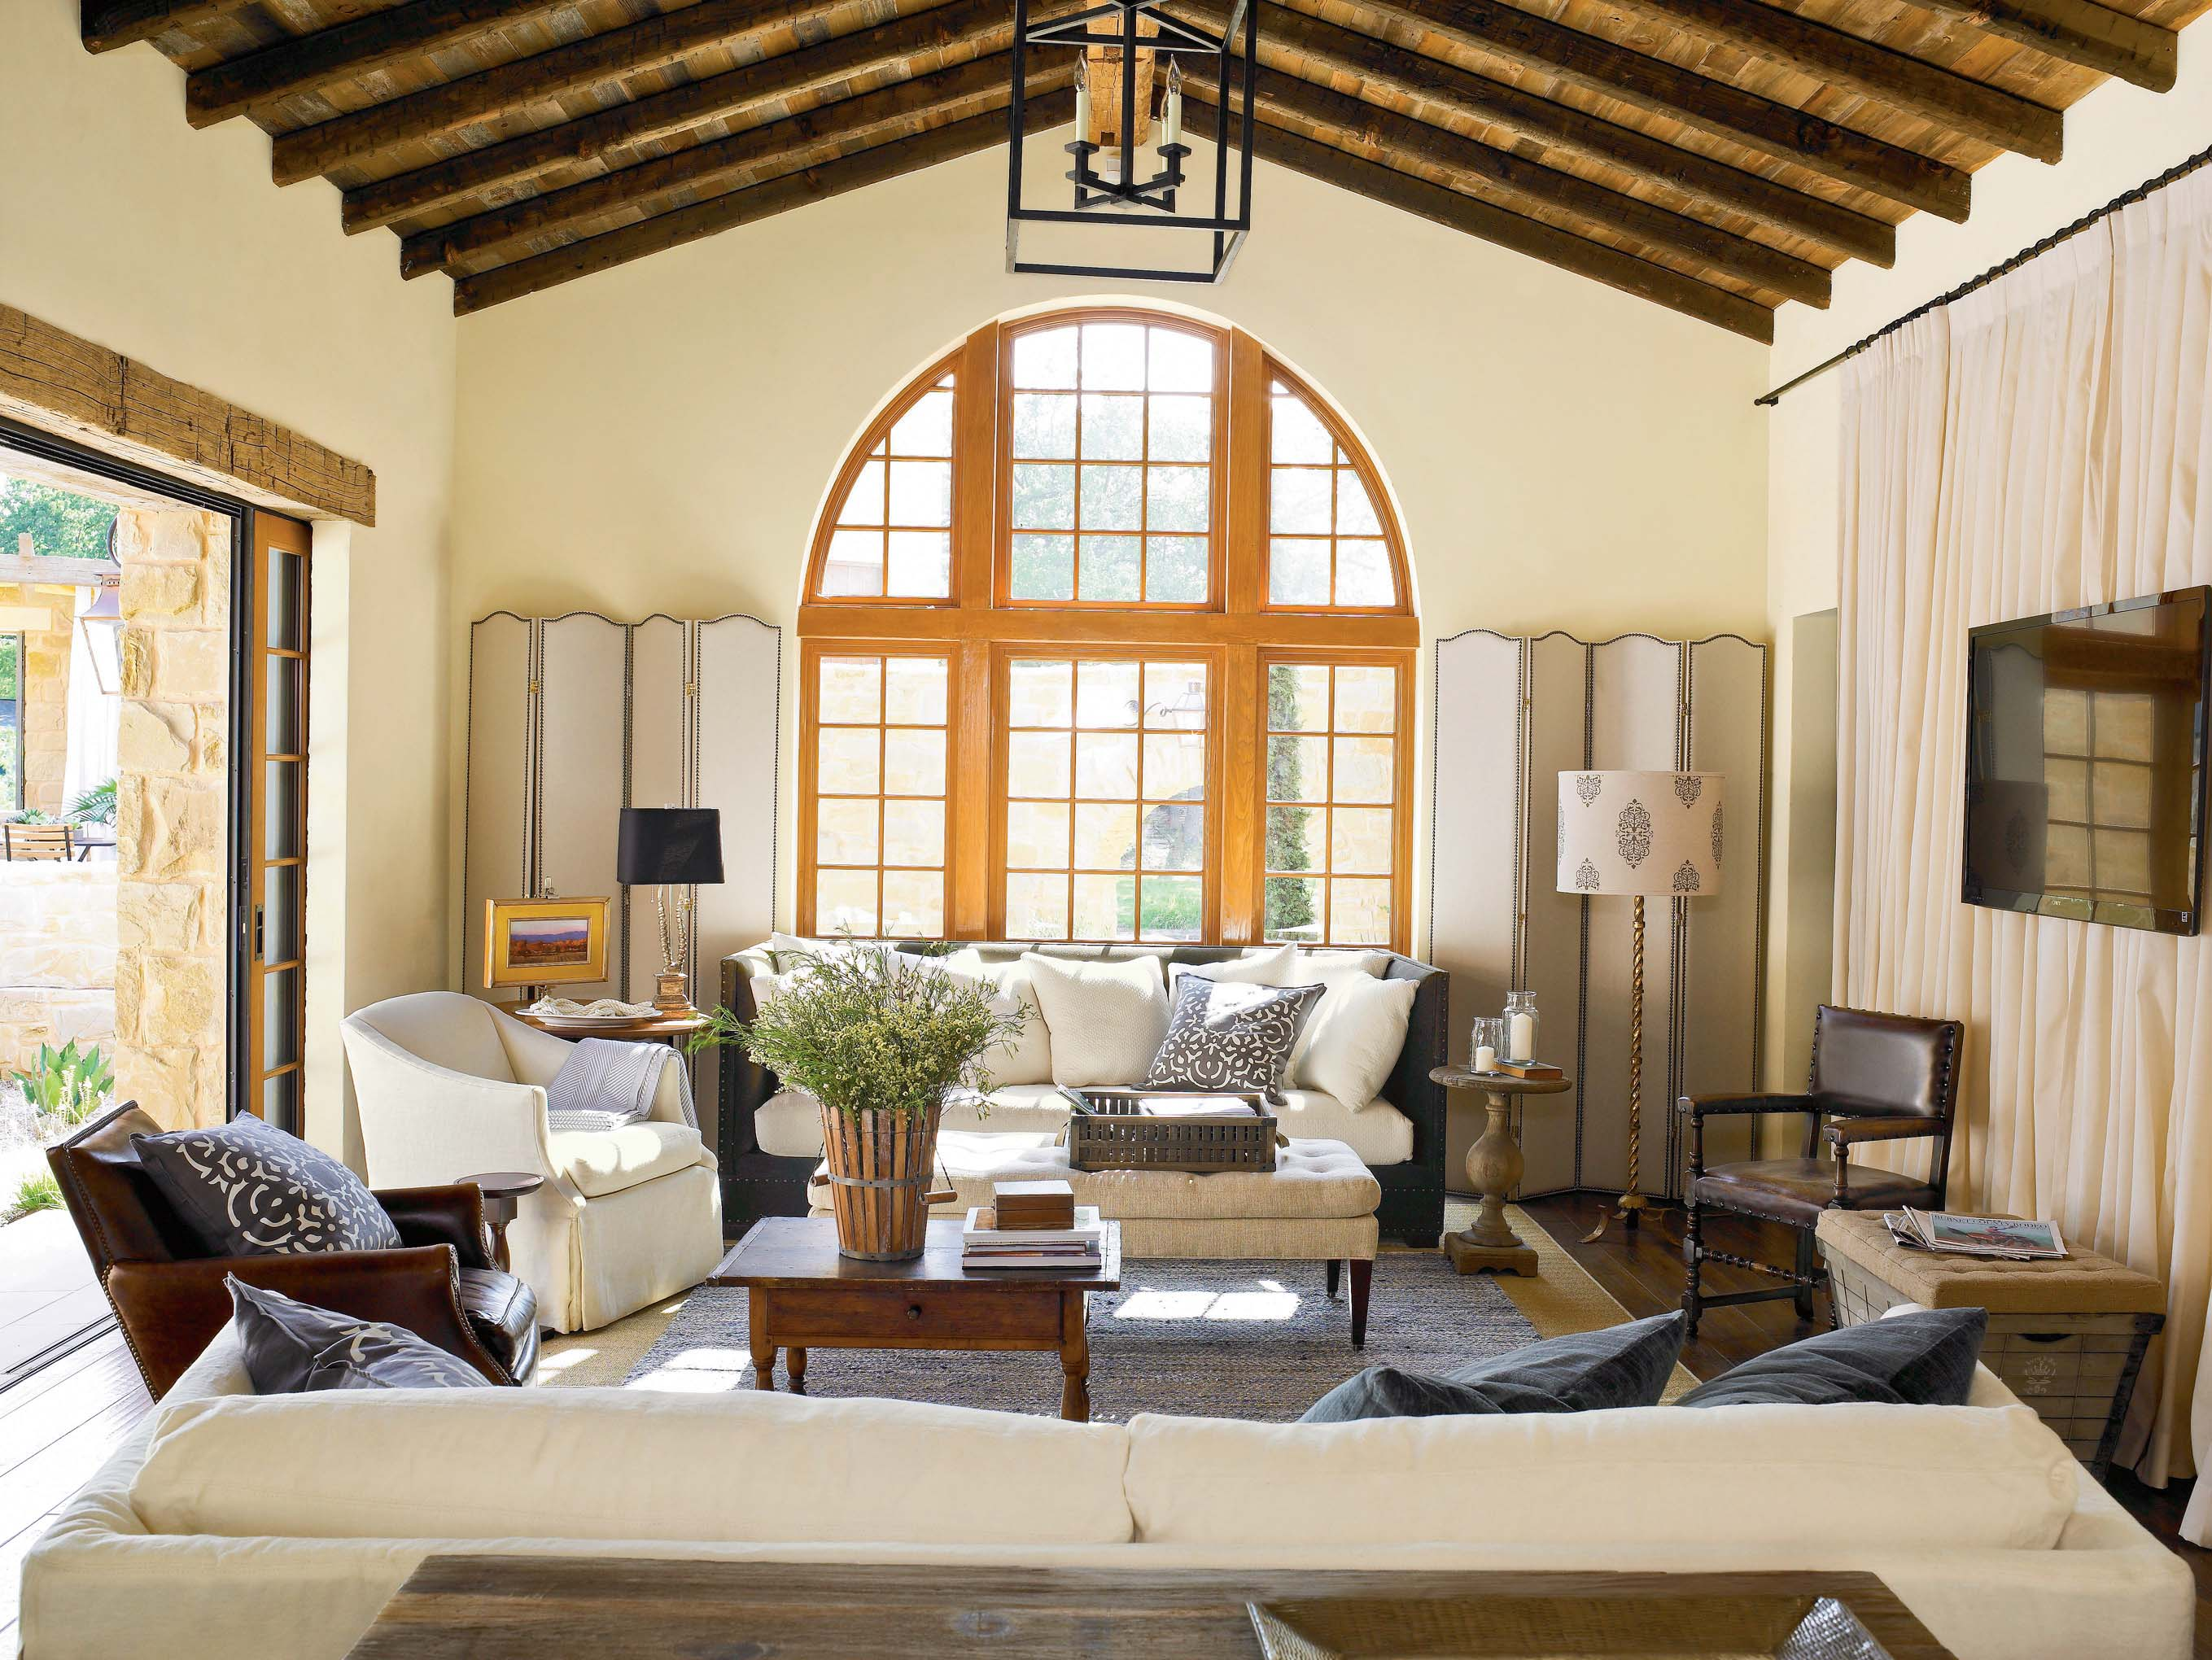 the 2011 southern living idea house opens in texas hill country - Southern Living Home Designs